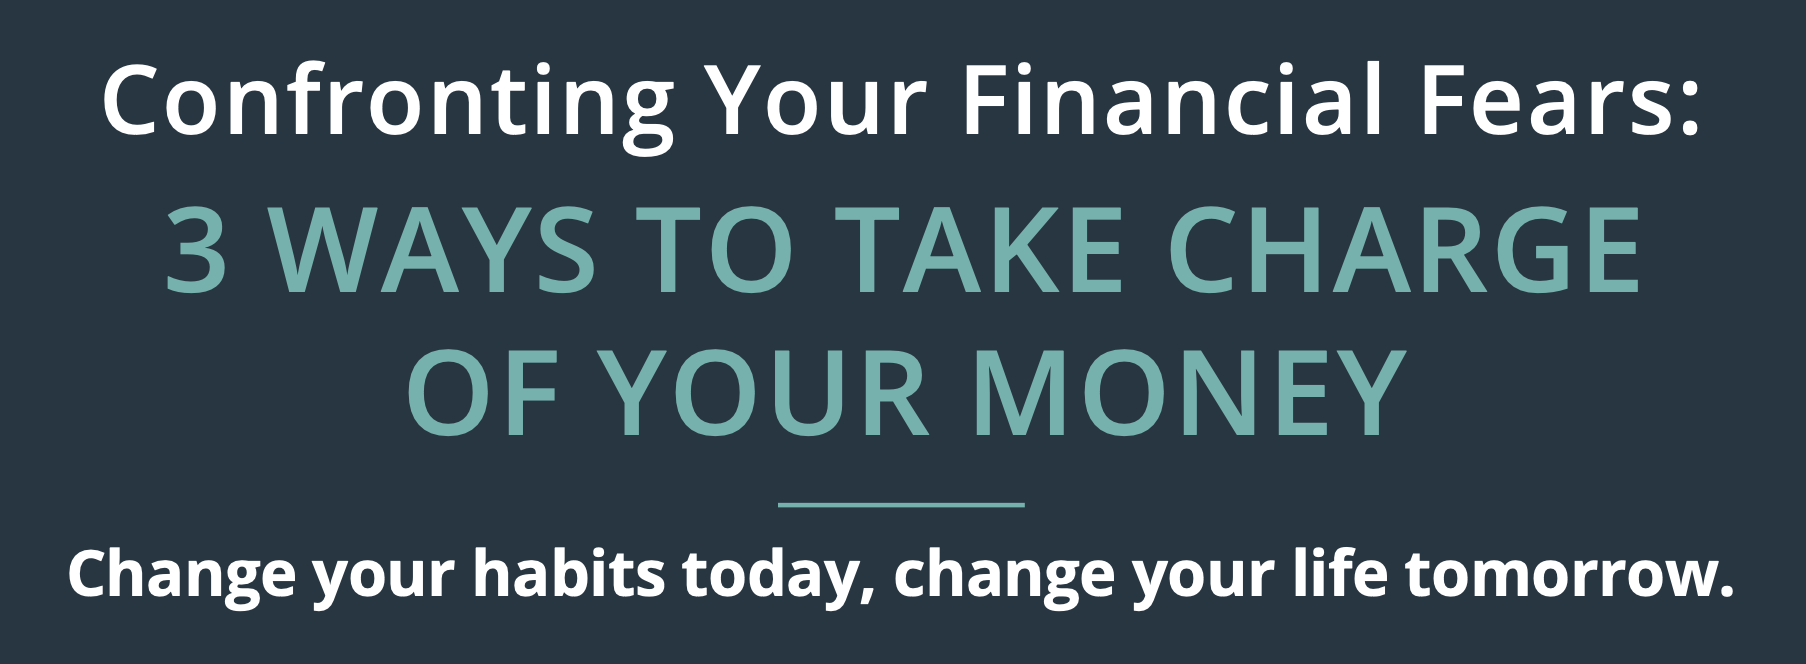 Confronting Your Financial Fears: 3 WAYS TO TAKE CHARGE OF YOUR MONEY Thumbnail